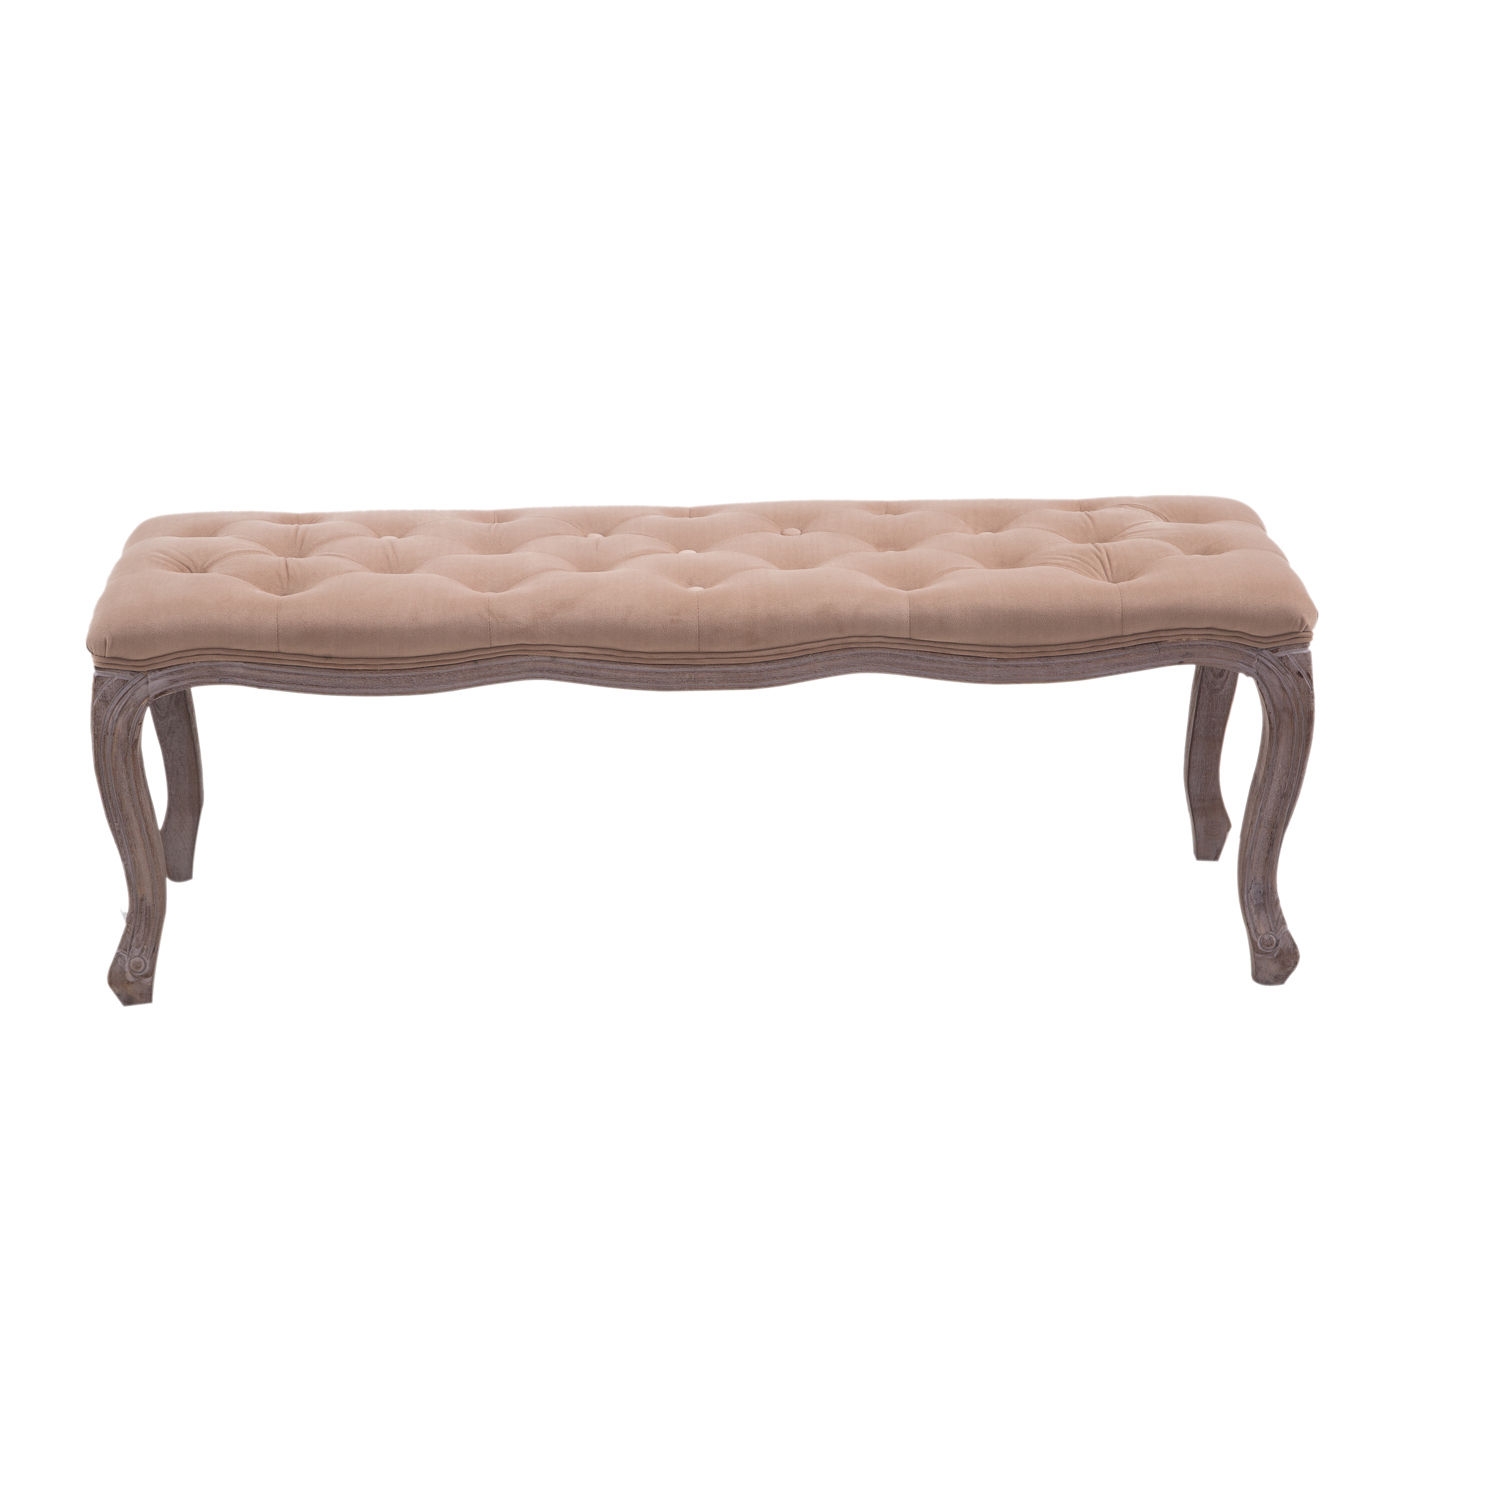 Tufted Foyer Bench : Upholstered bench tufted end of bed seat ottoman wood